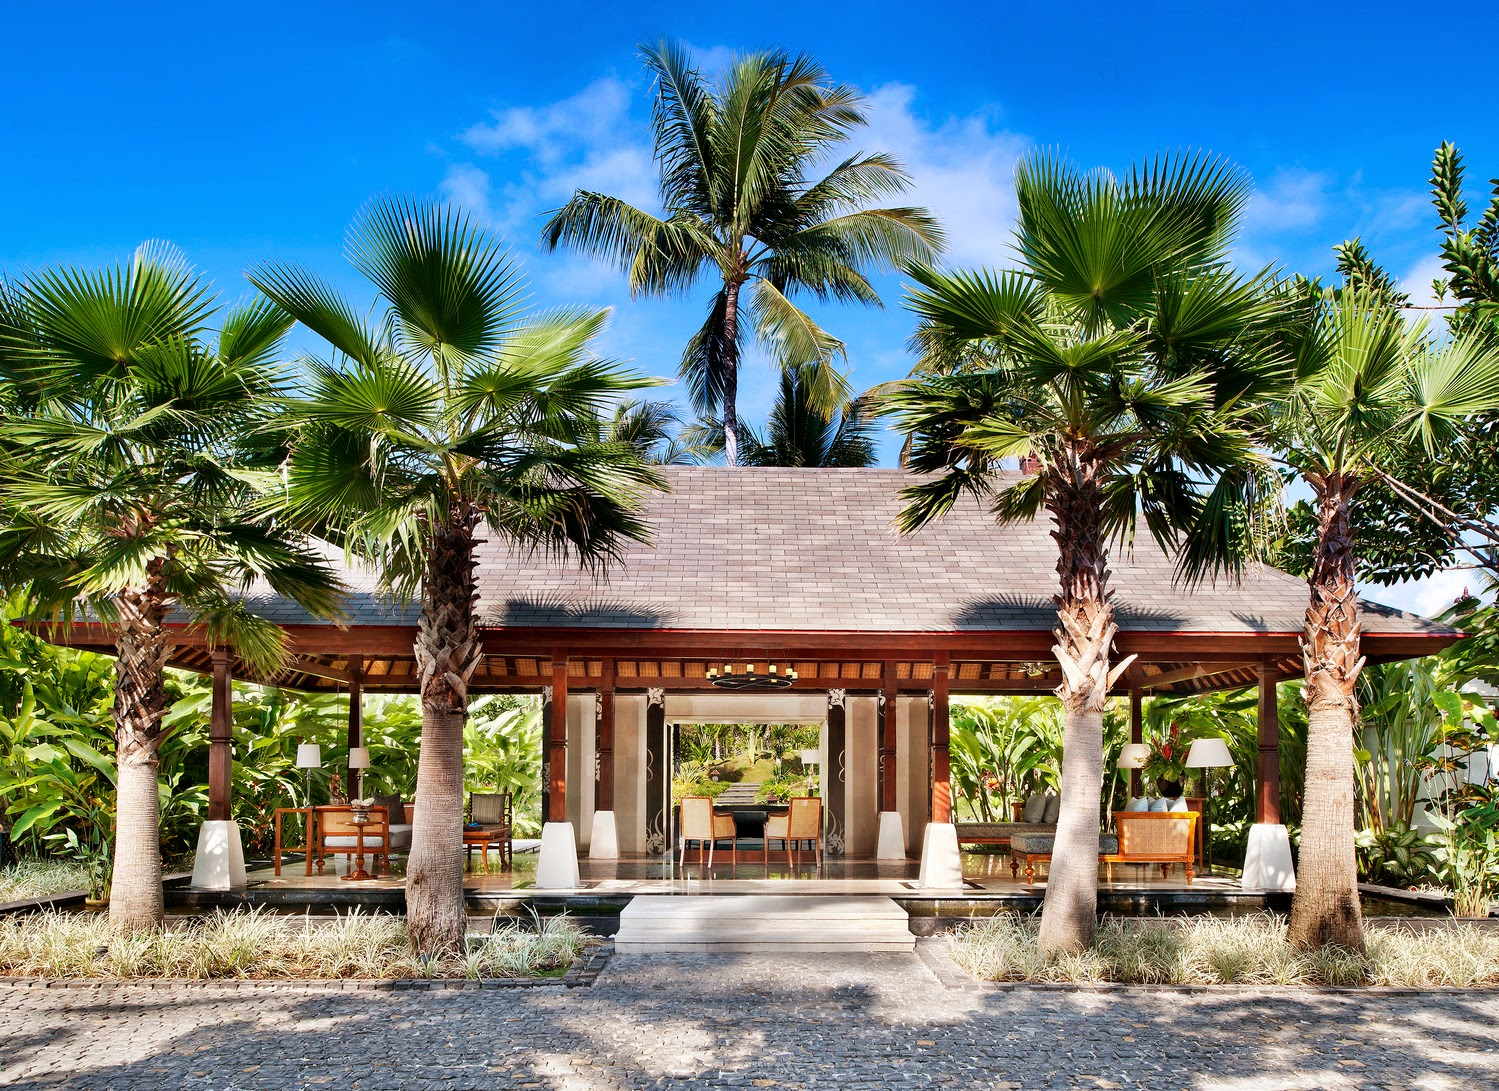 Luxury for less with up to 50 off stays in southeast asia for Luxury hotel for less